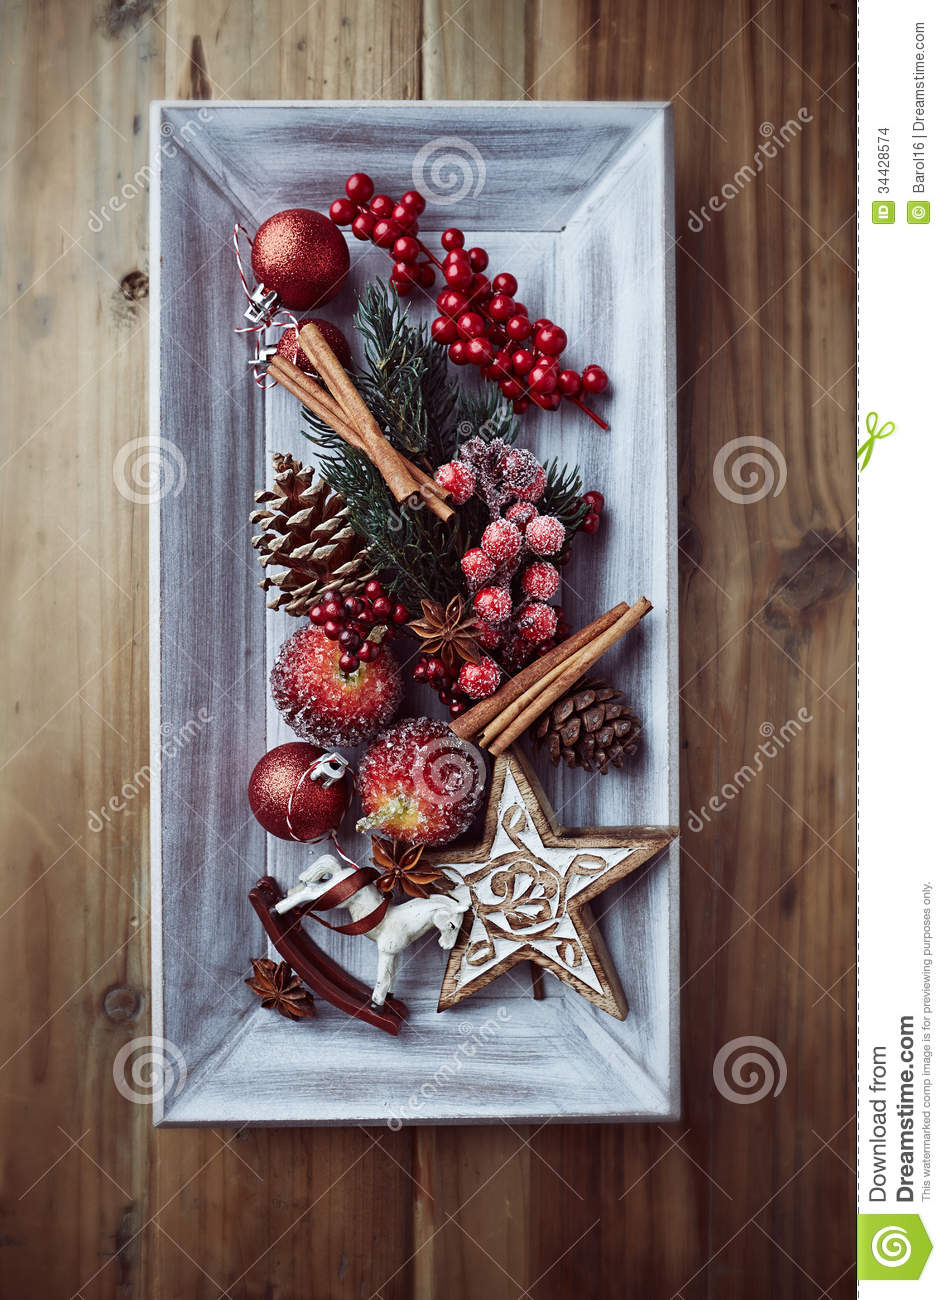 Decorating Styles Rustic Christmas Decorations On A Wooden Tray Stock Images